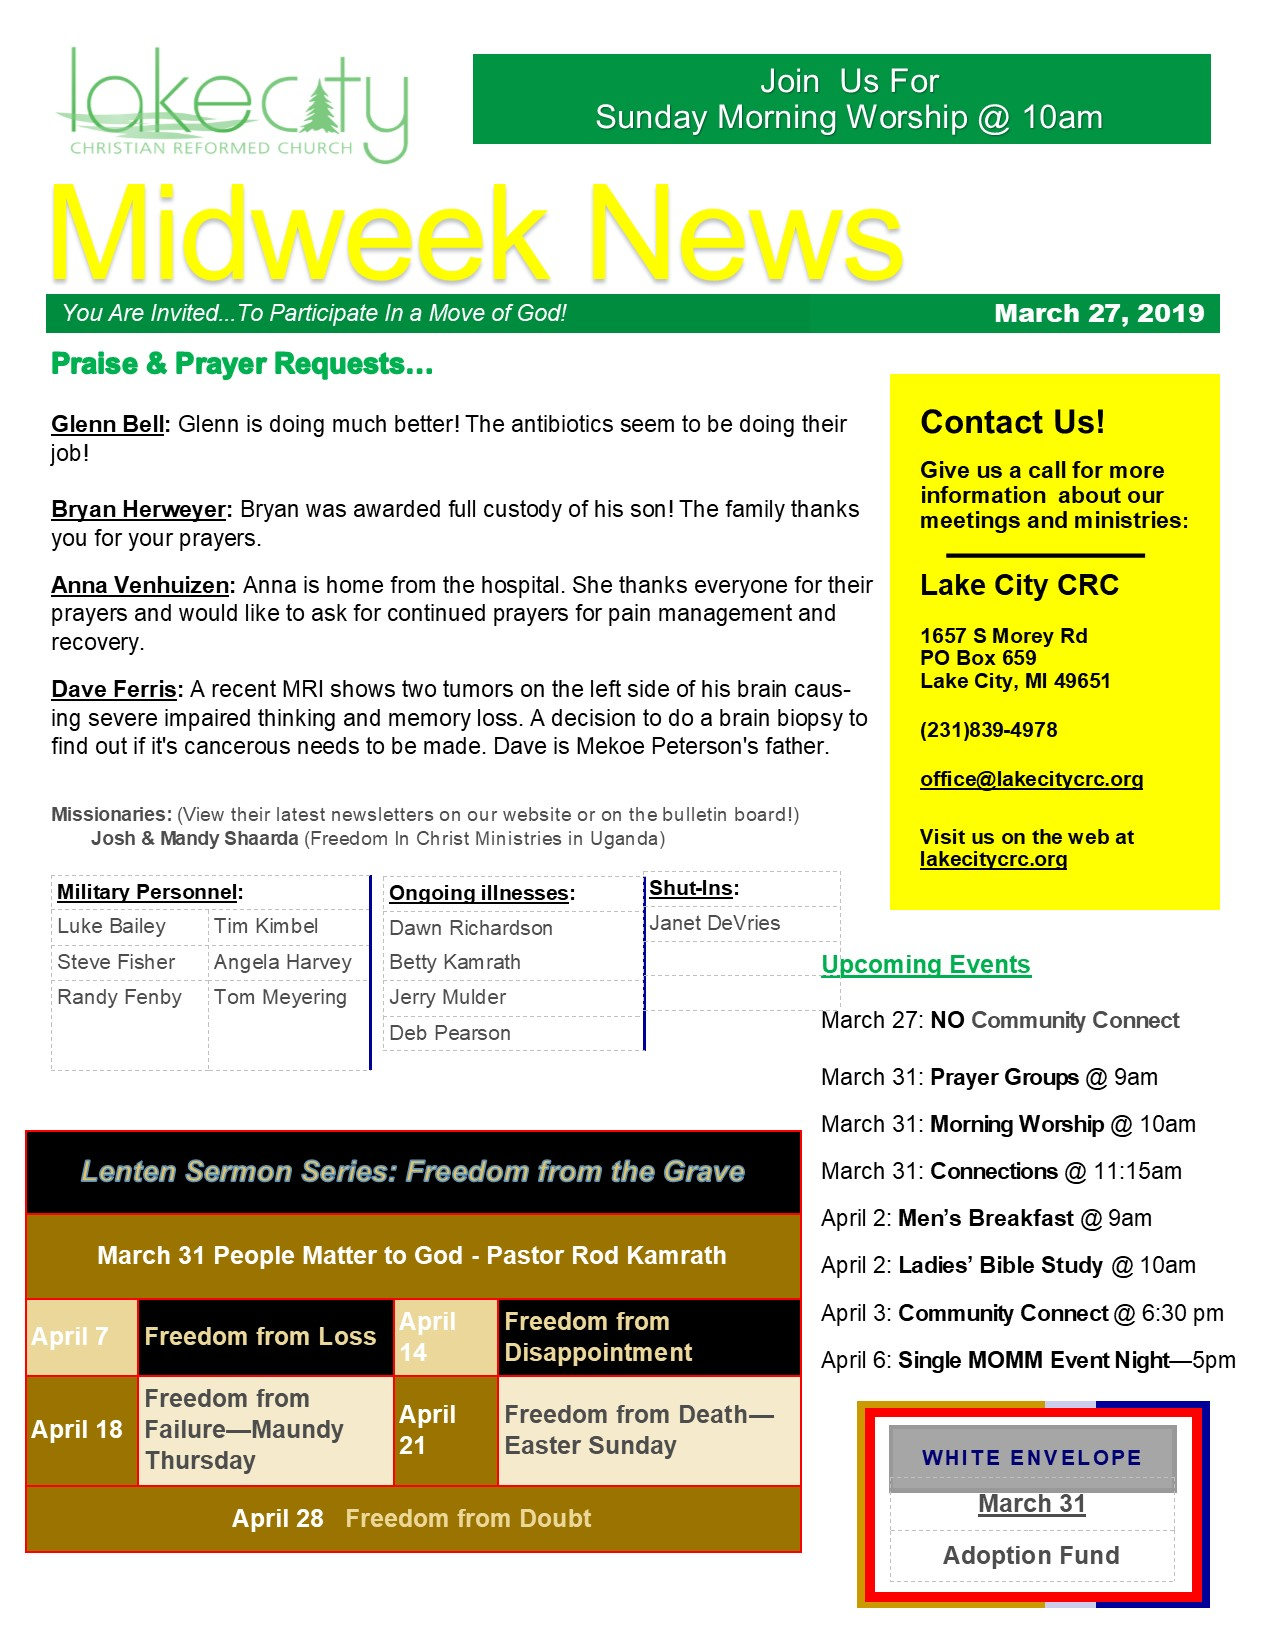 March 27, 2019 Mid-Week News